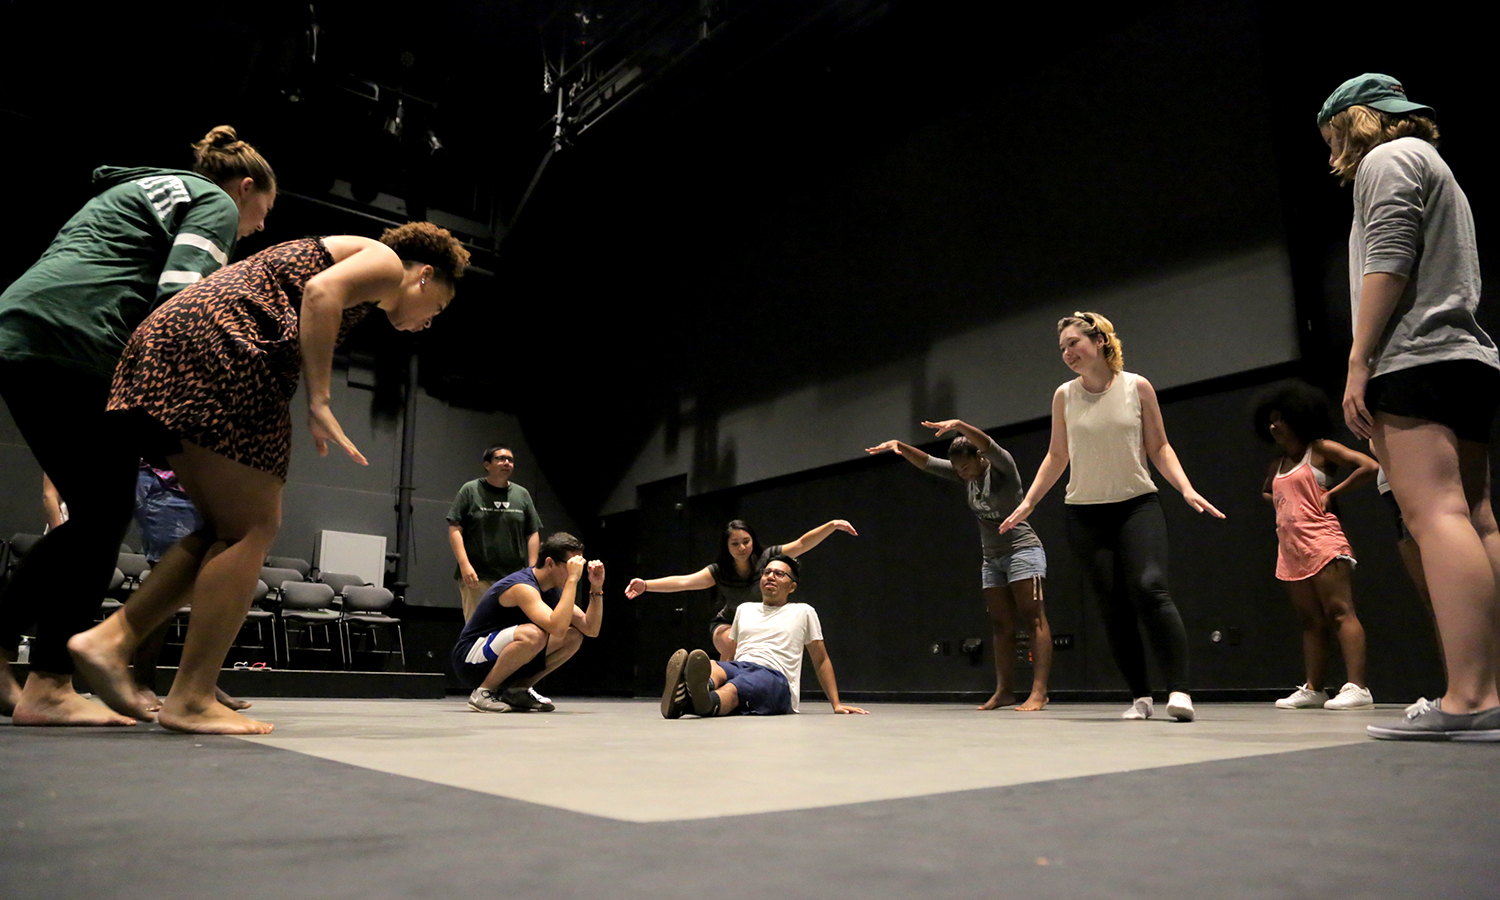 Led by Professor Heather May, students in the social justice theater group Mosaic NY perform an environment building excercise in the McDonald Theatre of the Gearan Center for the Performing Arts.